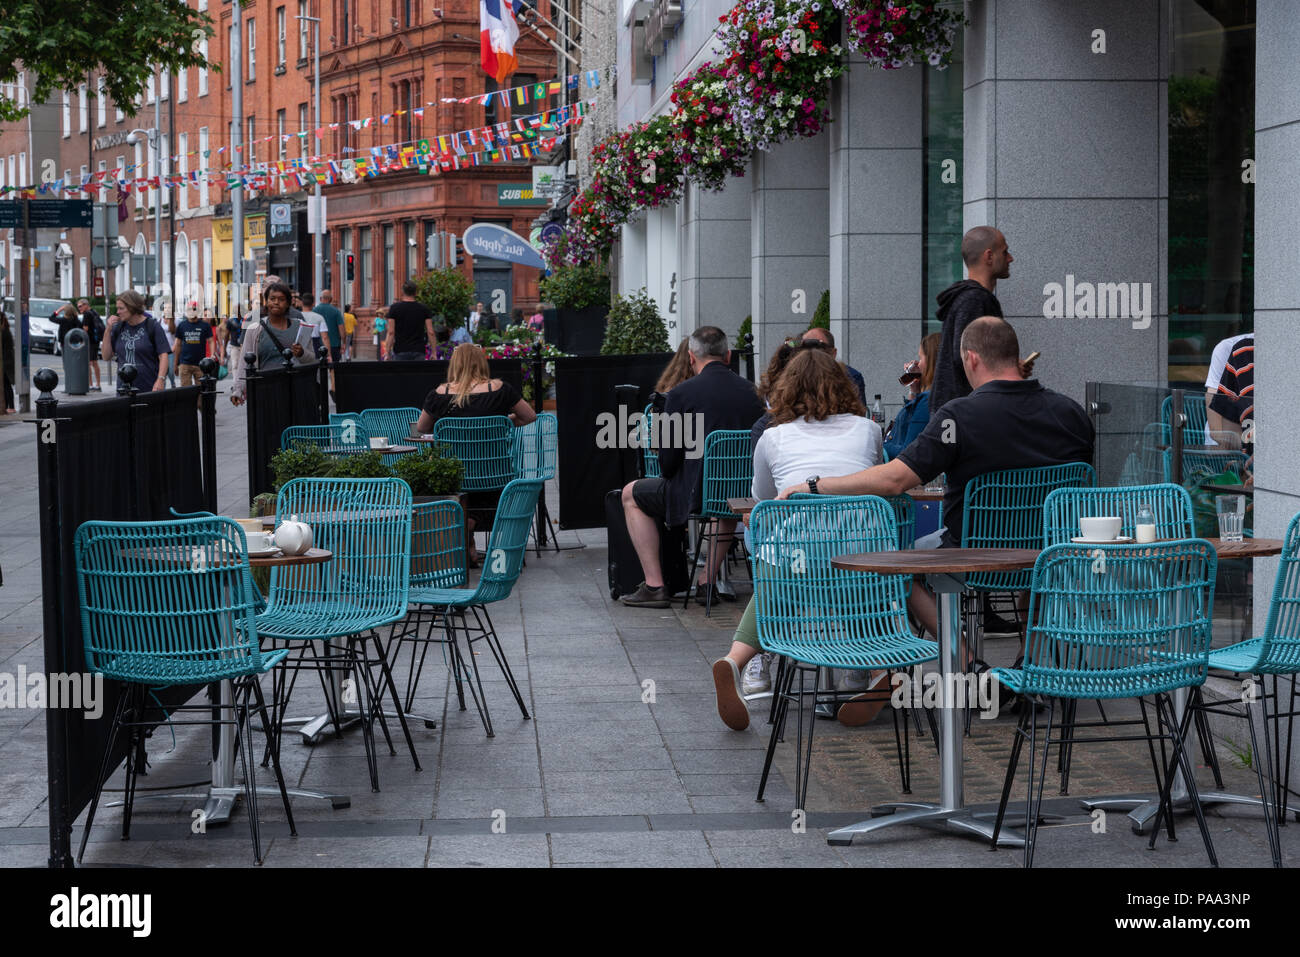 People sitting at an outdoor cafe in Dublin, Ireland having coffee while nearby pedestrians walk past. - Stock Image